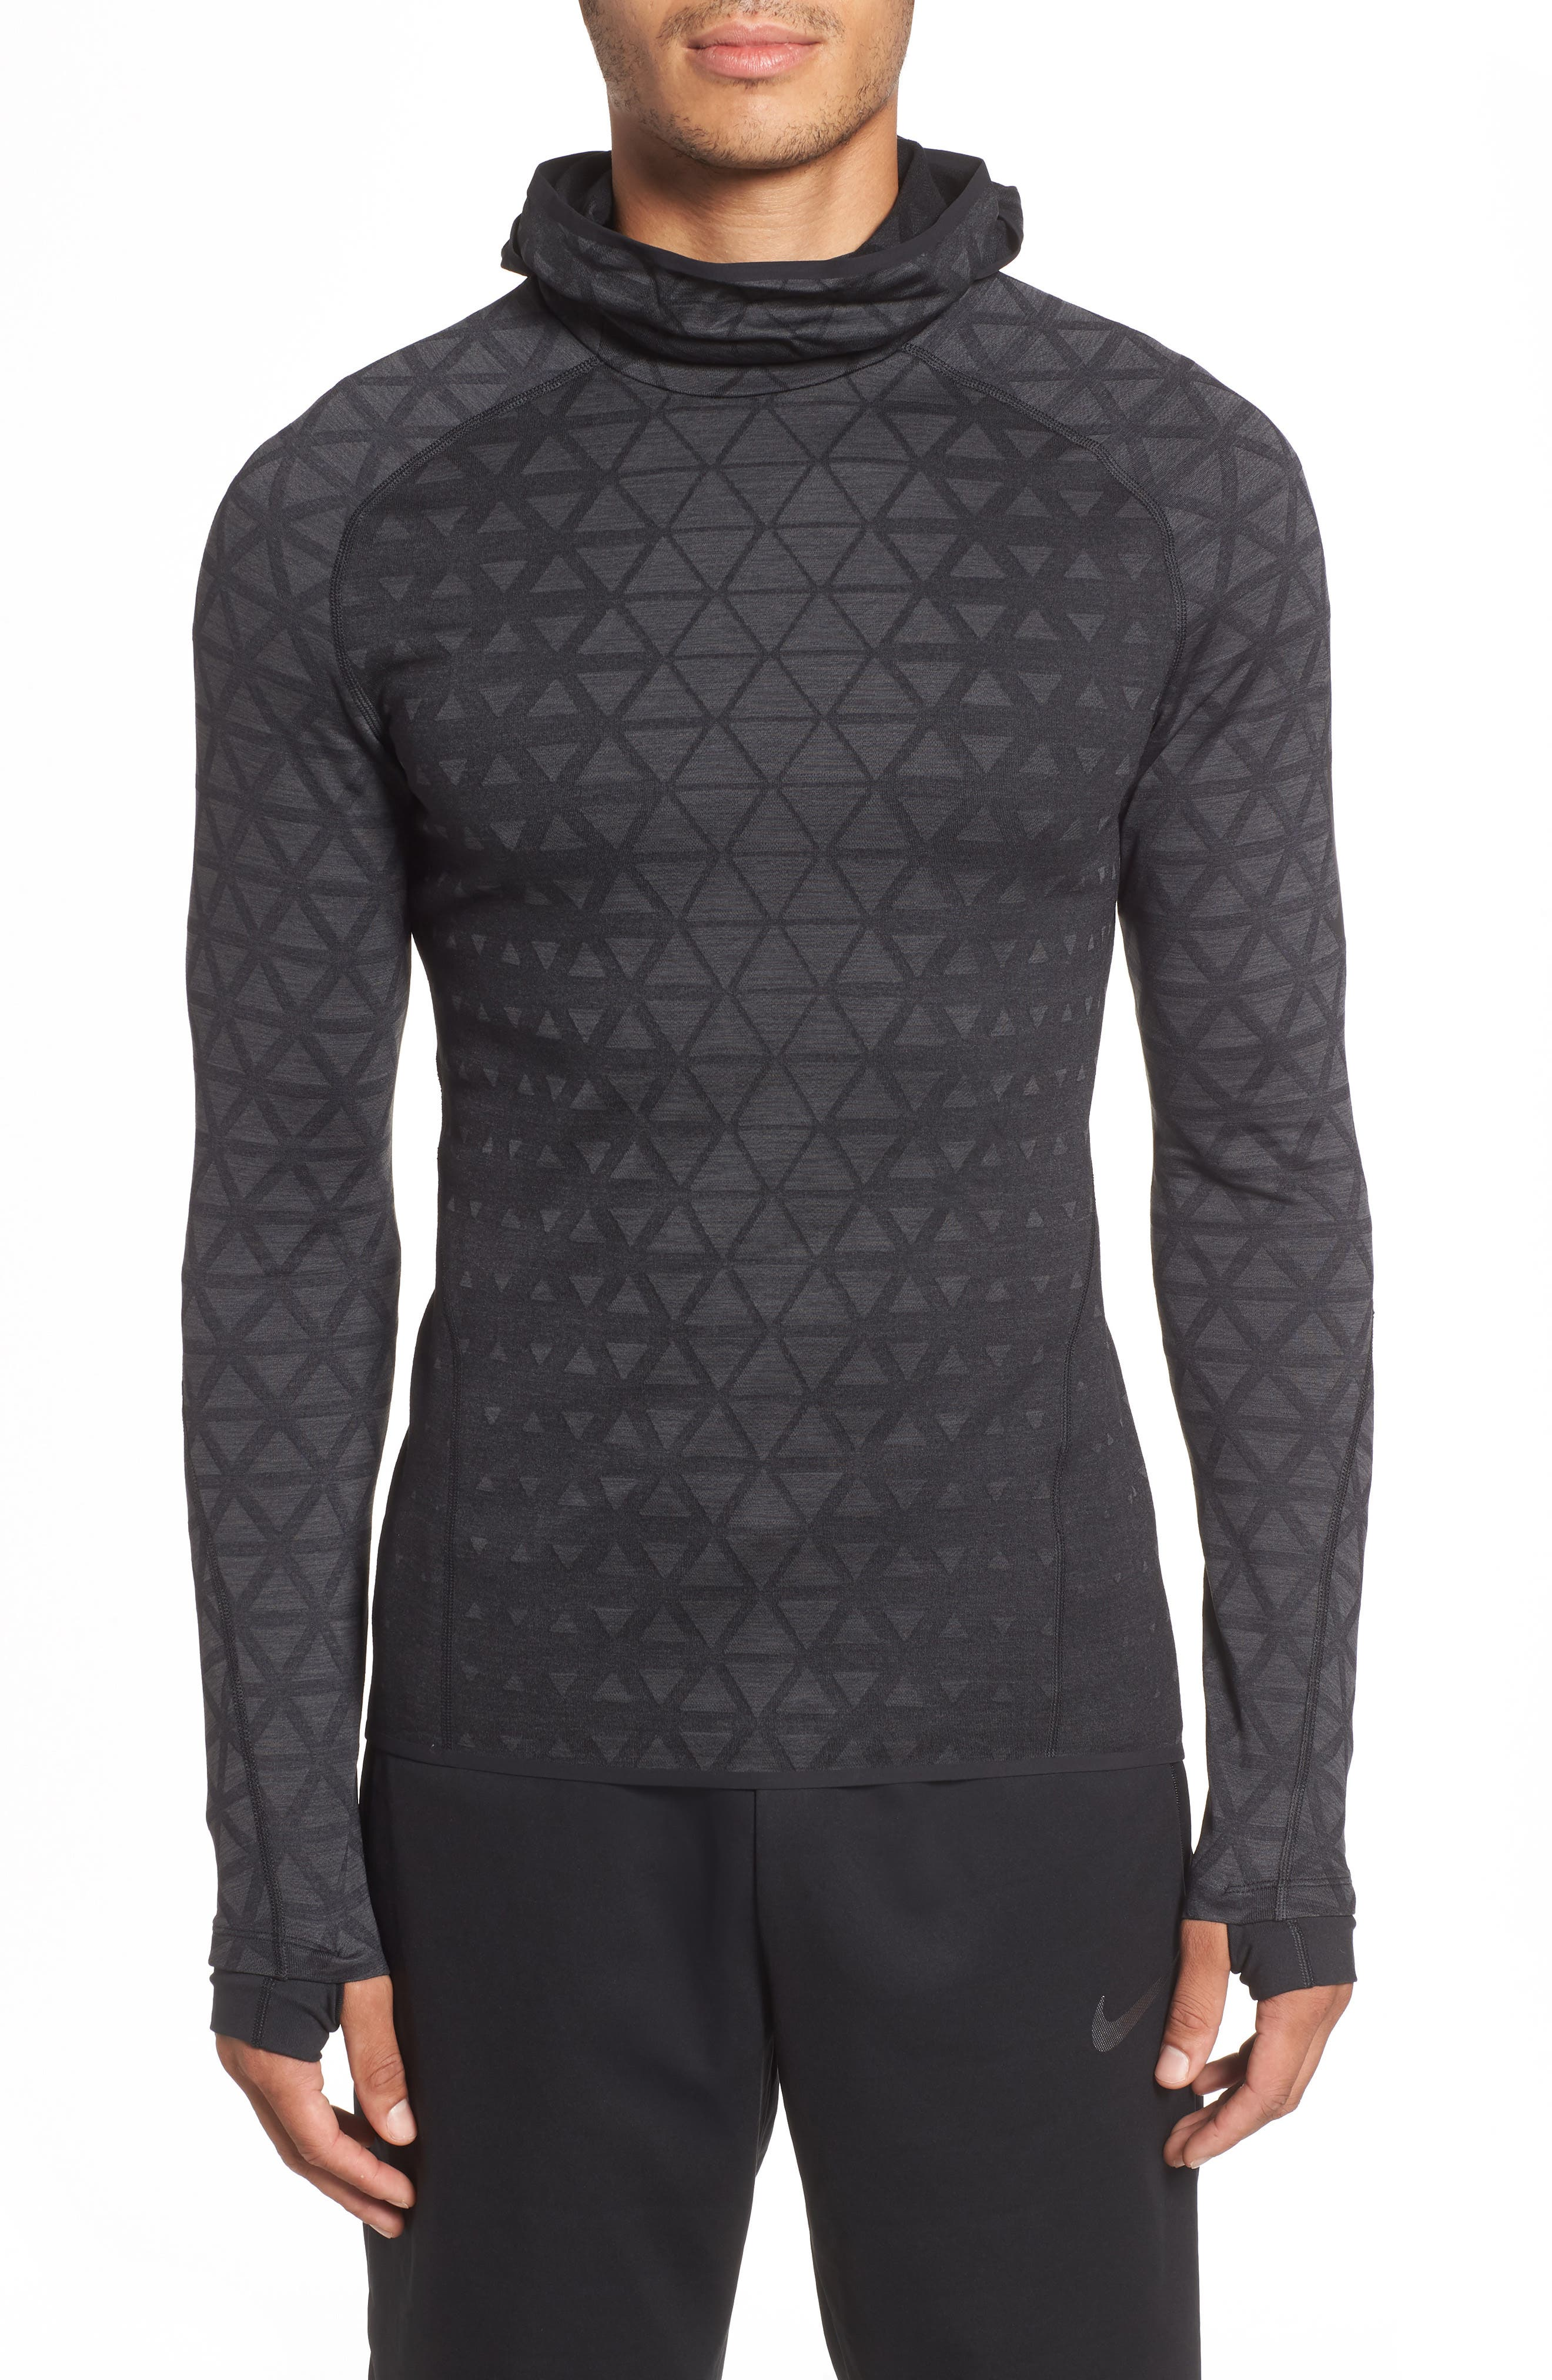 Therma Sphere Hooded Training Top,                         Main,                         color, BLACK/ ANTHRACITE/ ANTHRACITE